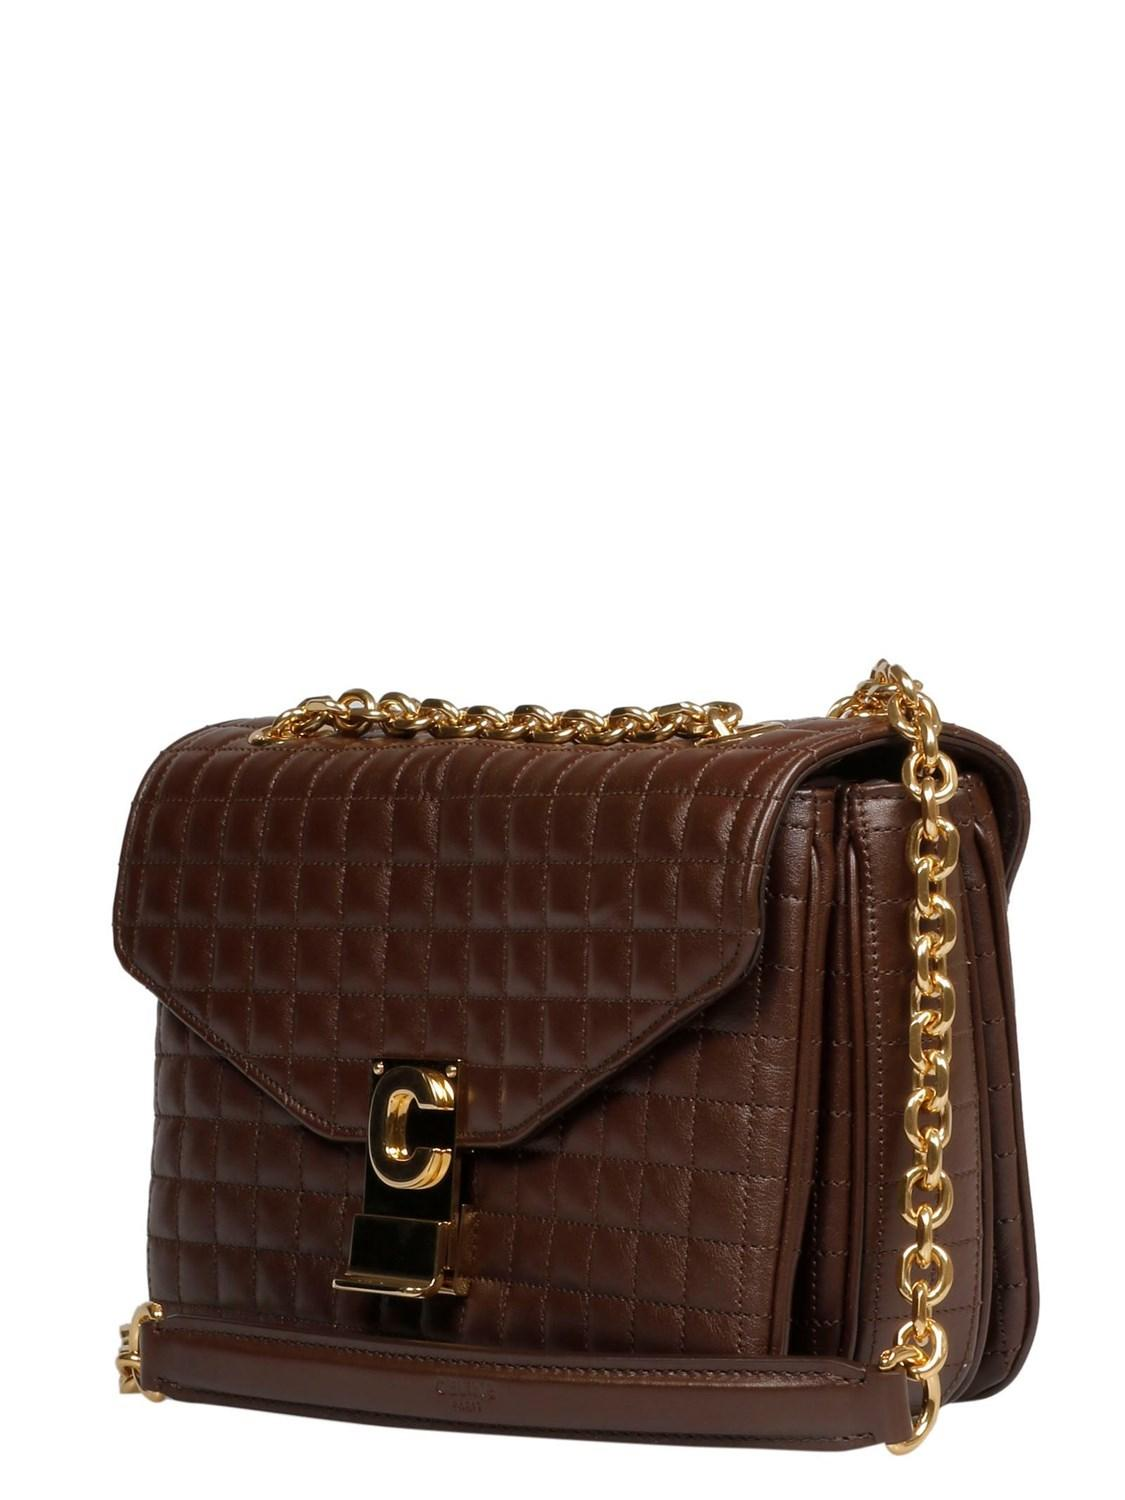 Lyst - Céline Céline Women s 187253bfc19br Brown Leather Shoulder Bag in  Brown de57a1c021354